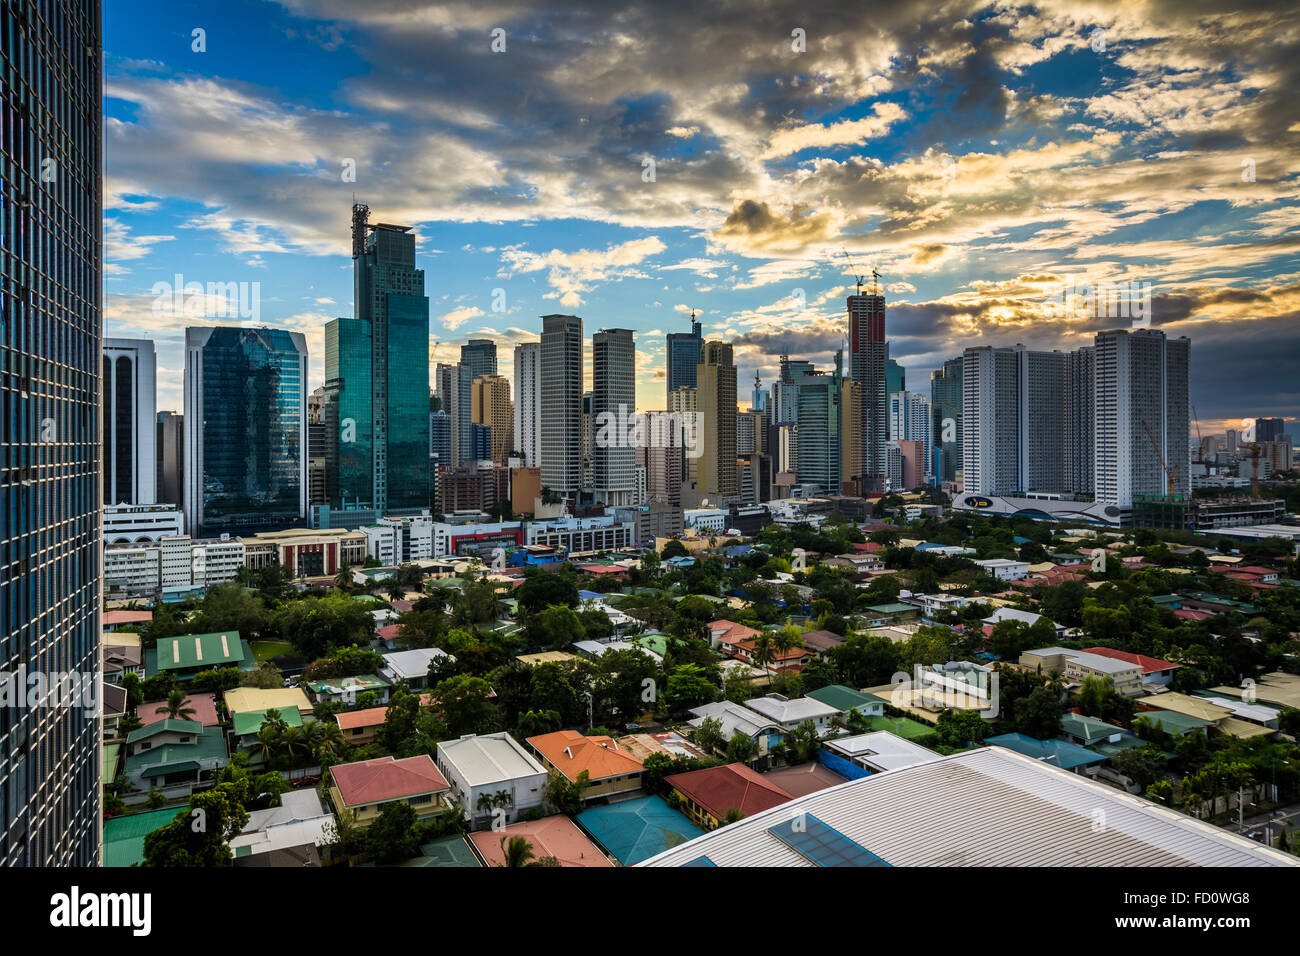 View Of The Skyline Of Makati At Sunset In Metro Manila The Stock Photo Royalty Free Image